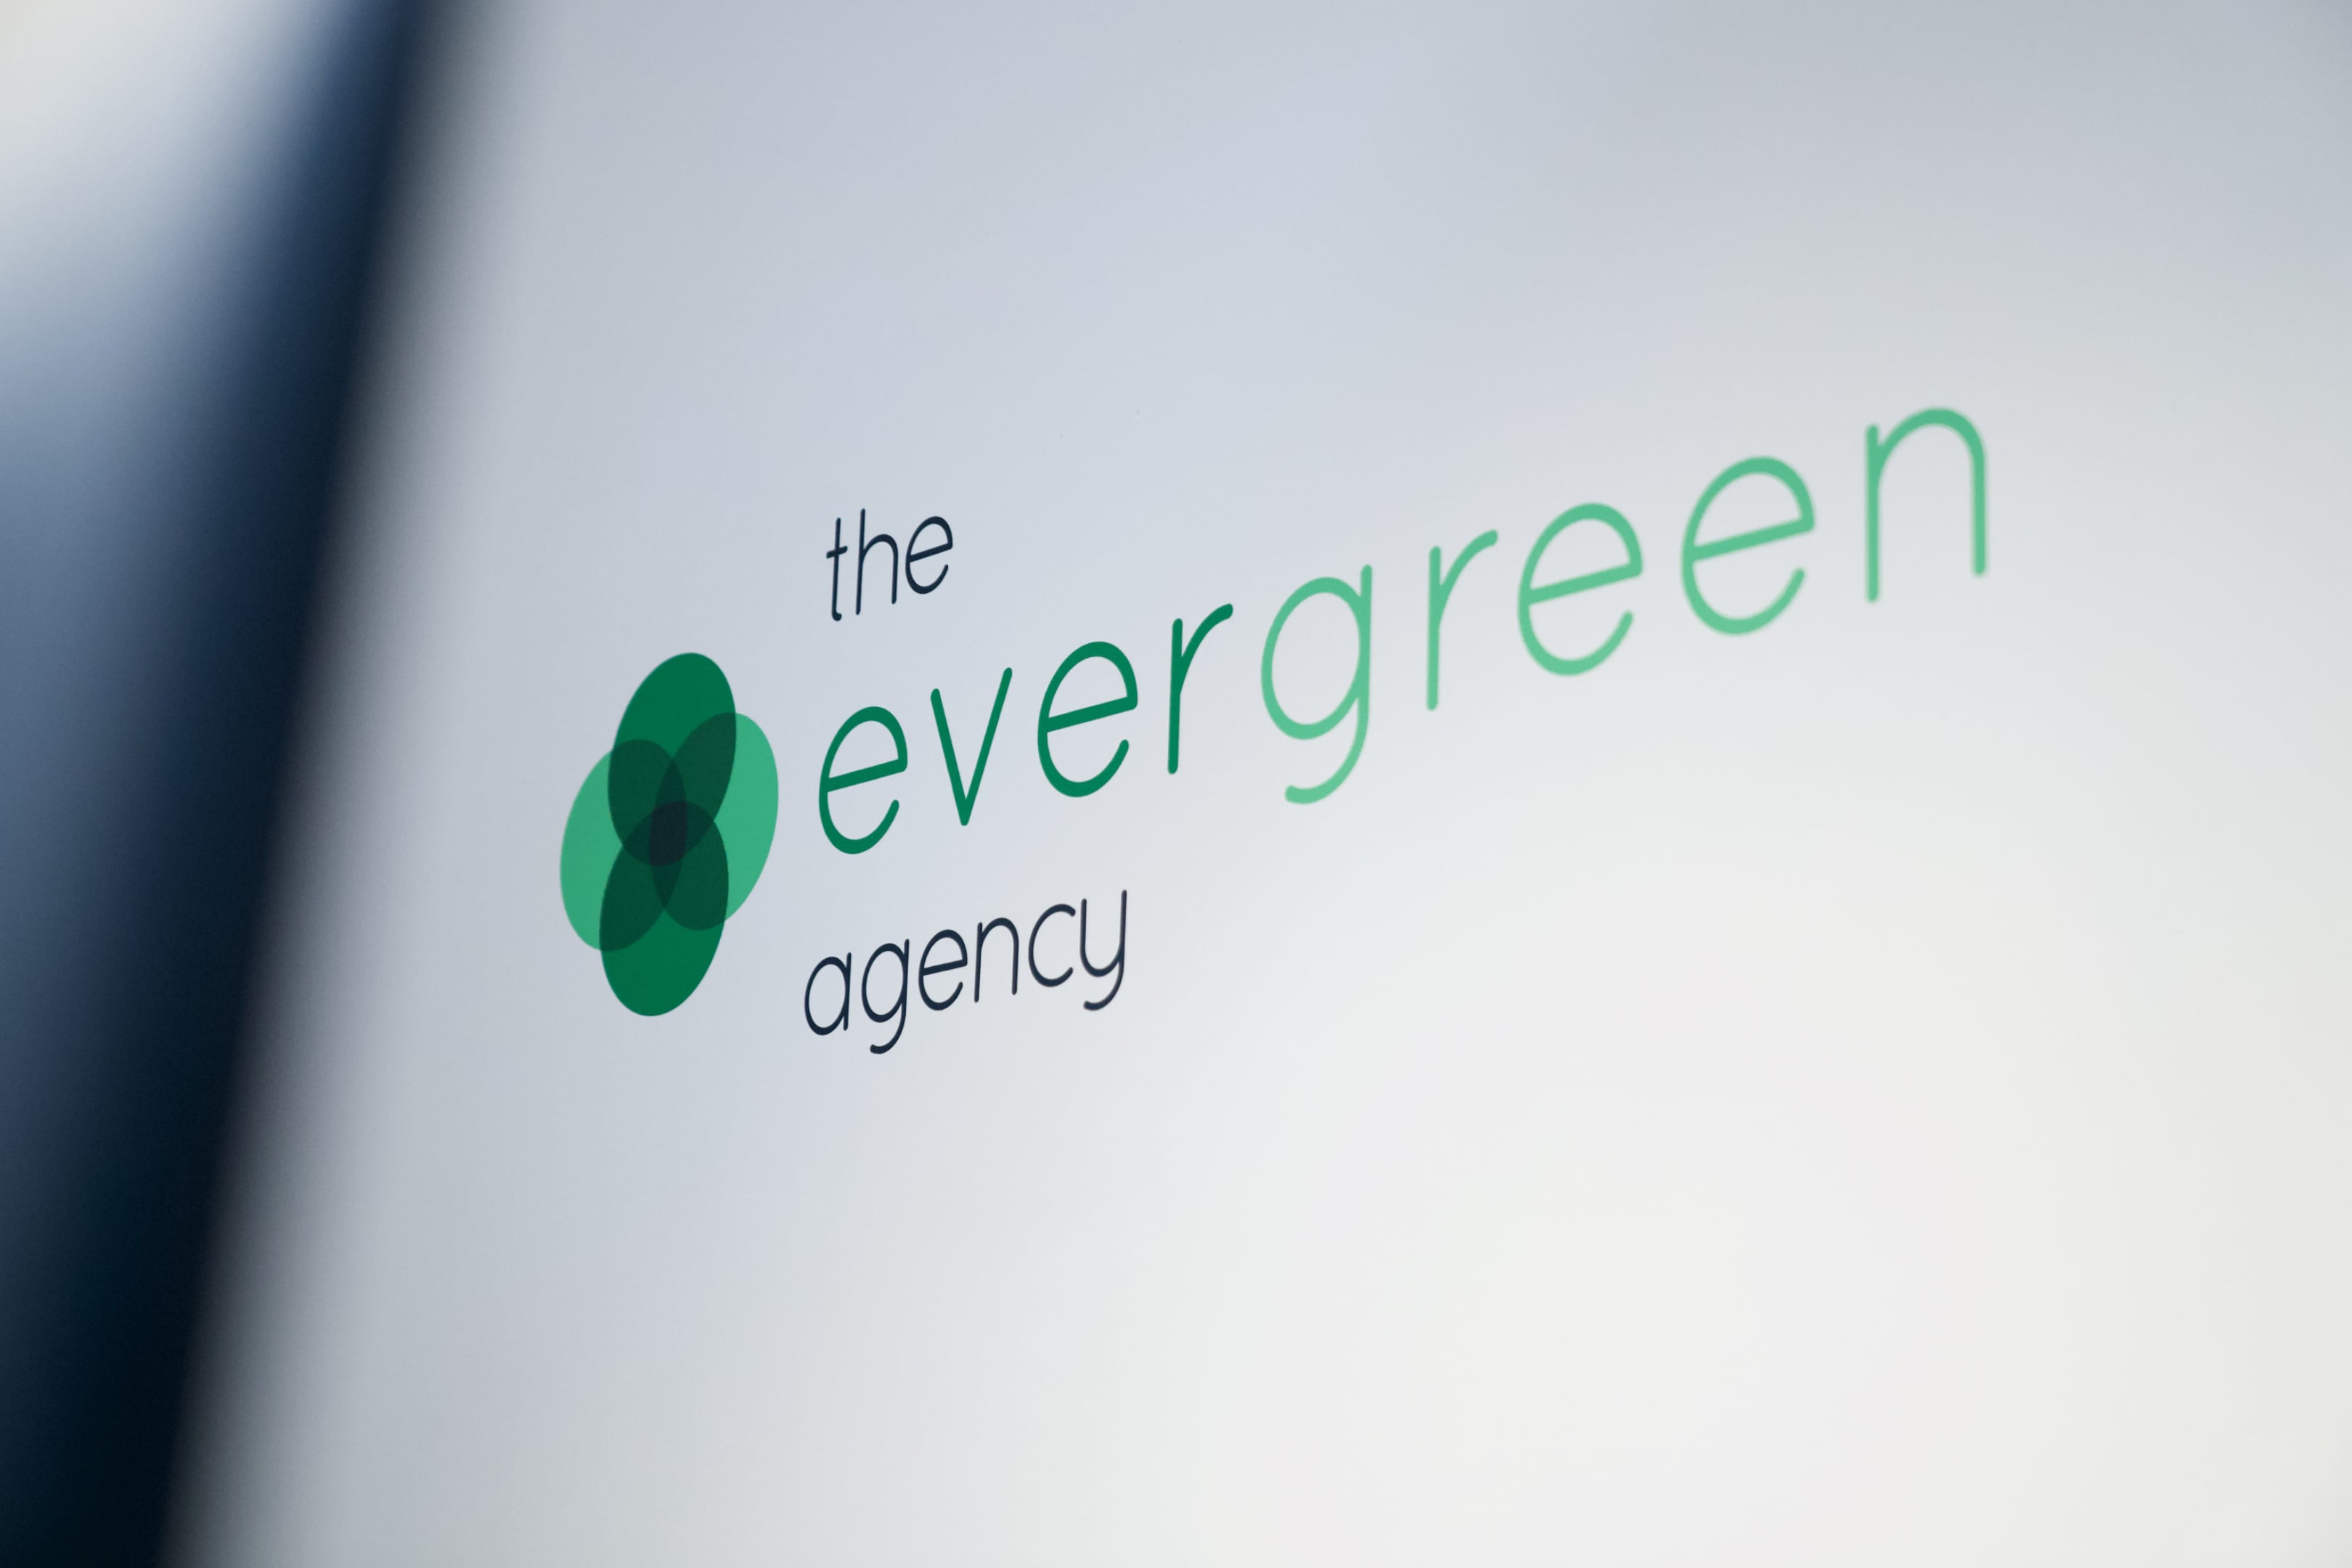 The Evergreen Agency logo on a white wall in their office